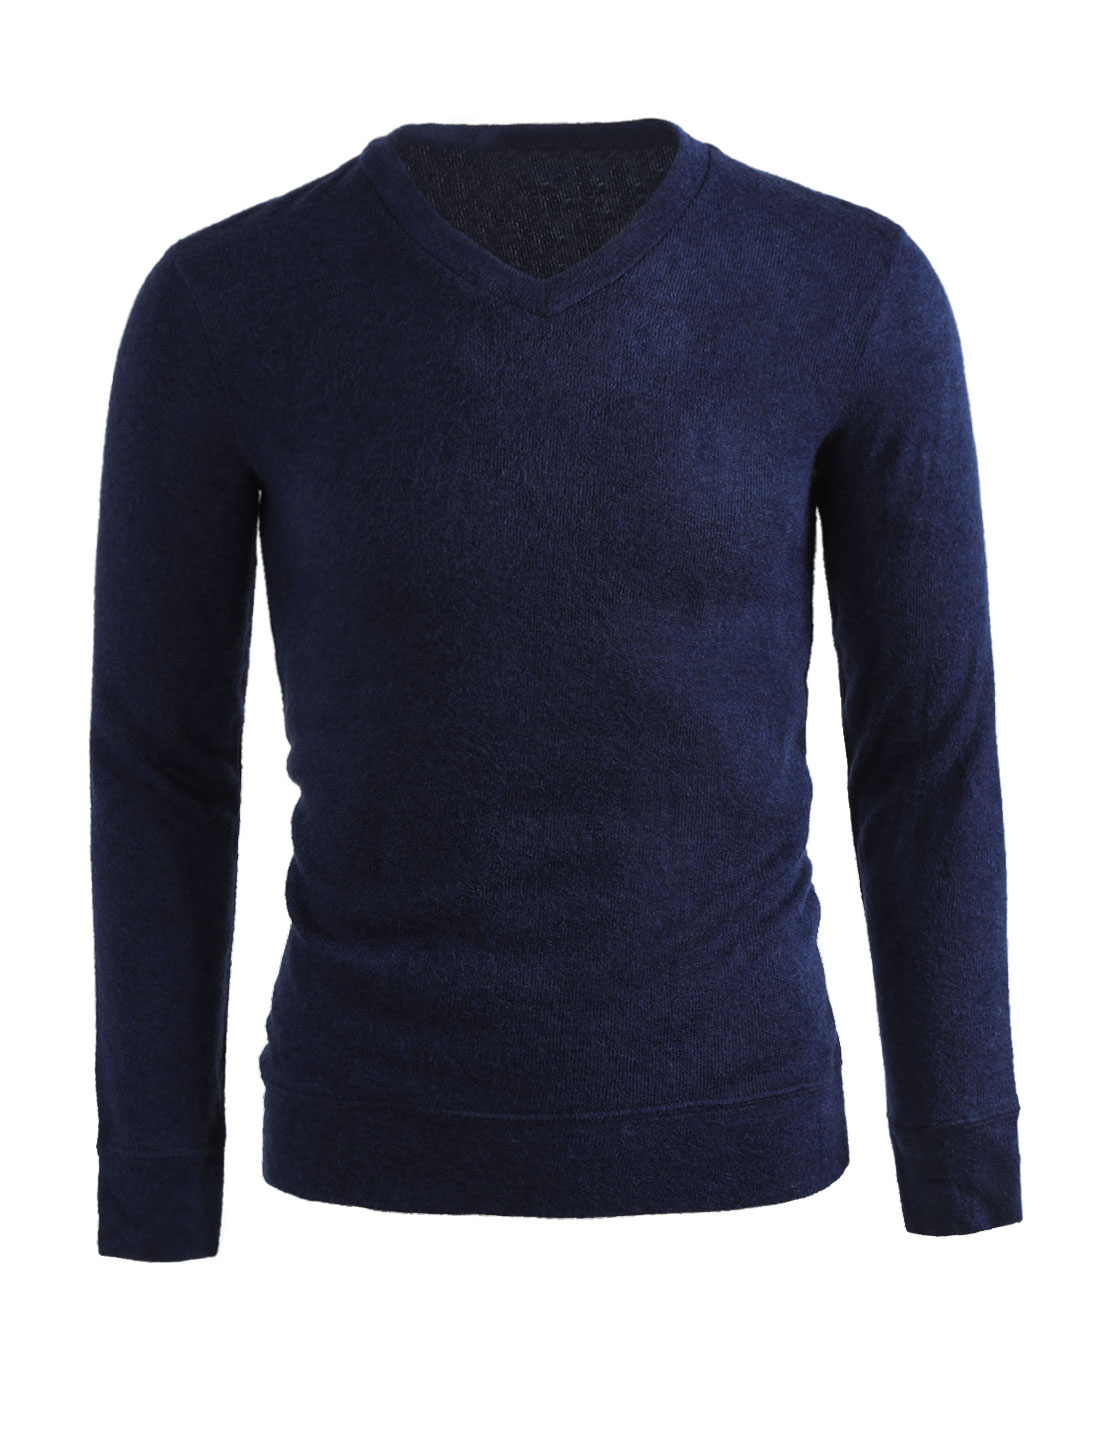 Men V Neck Long Sleeves Solid Color Knit Top Blue L